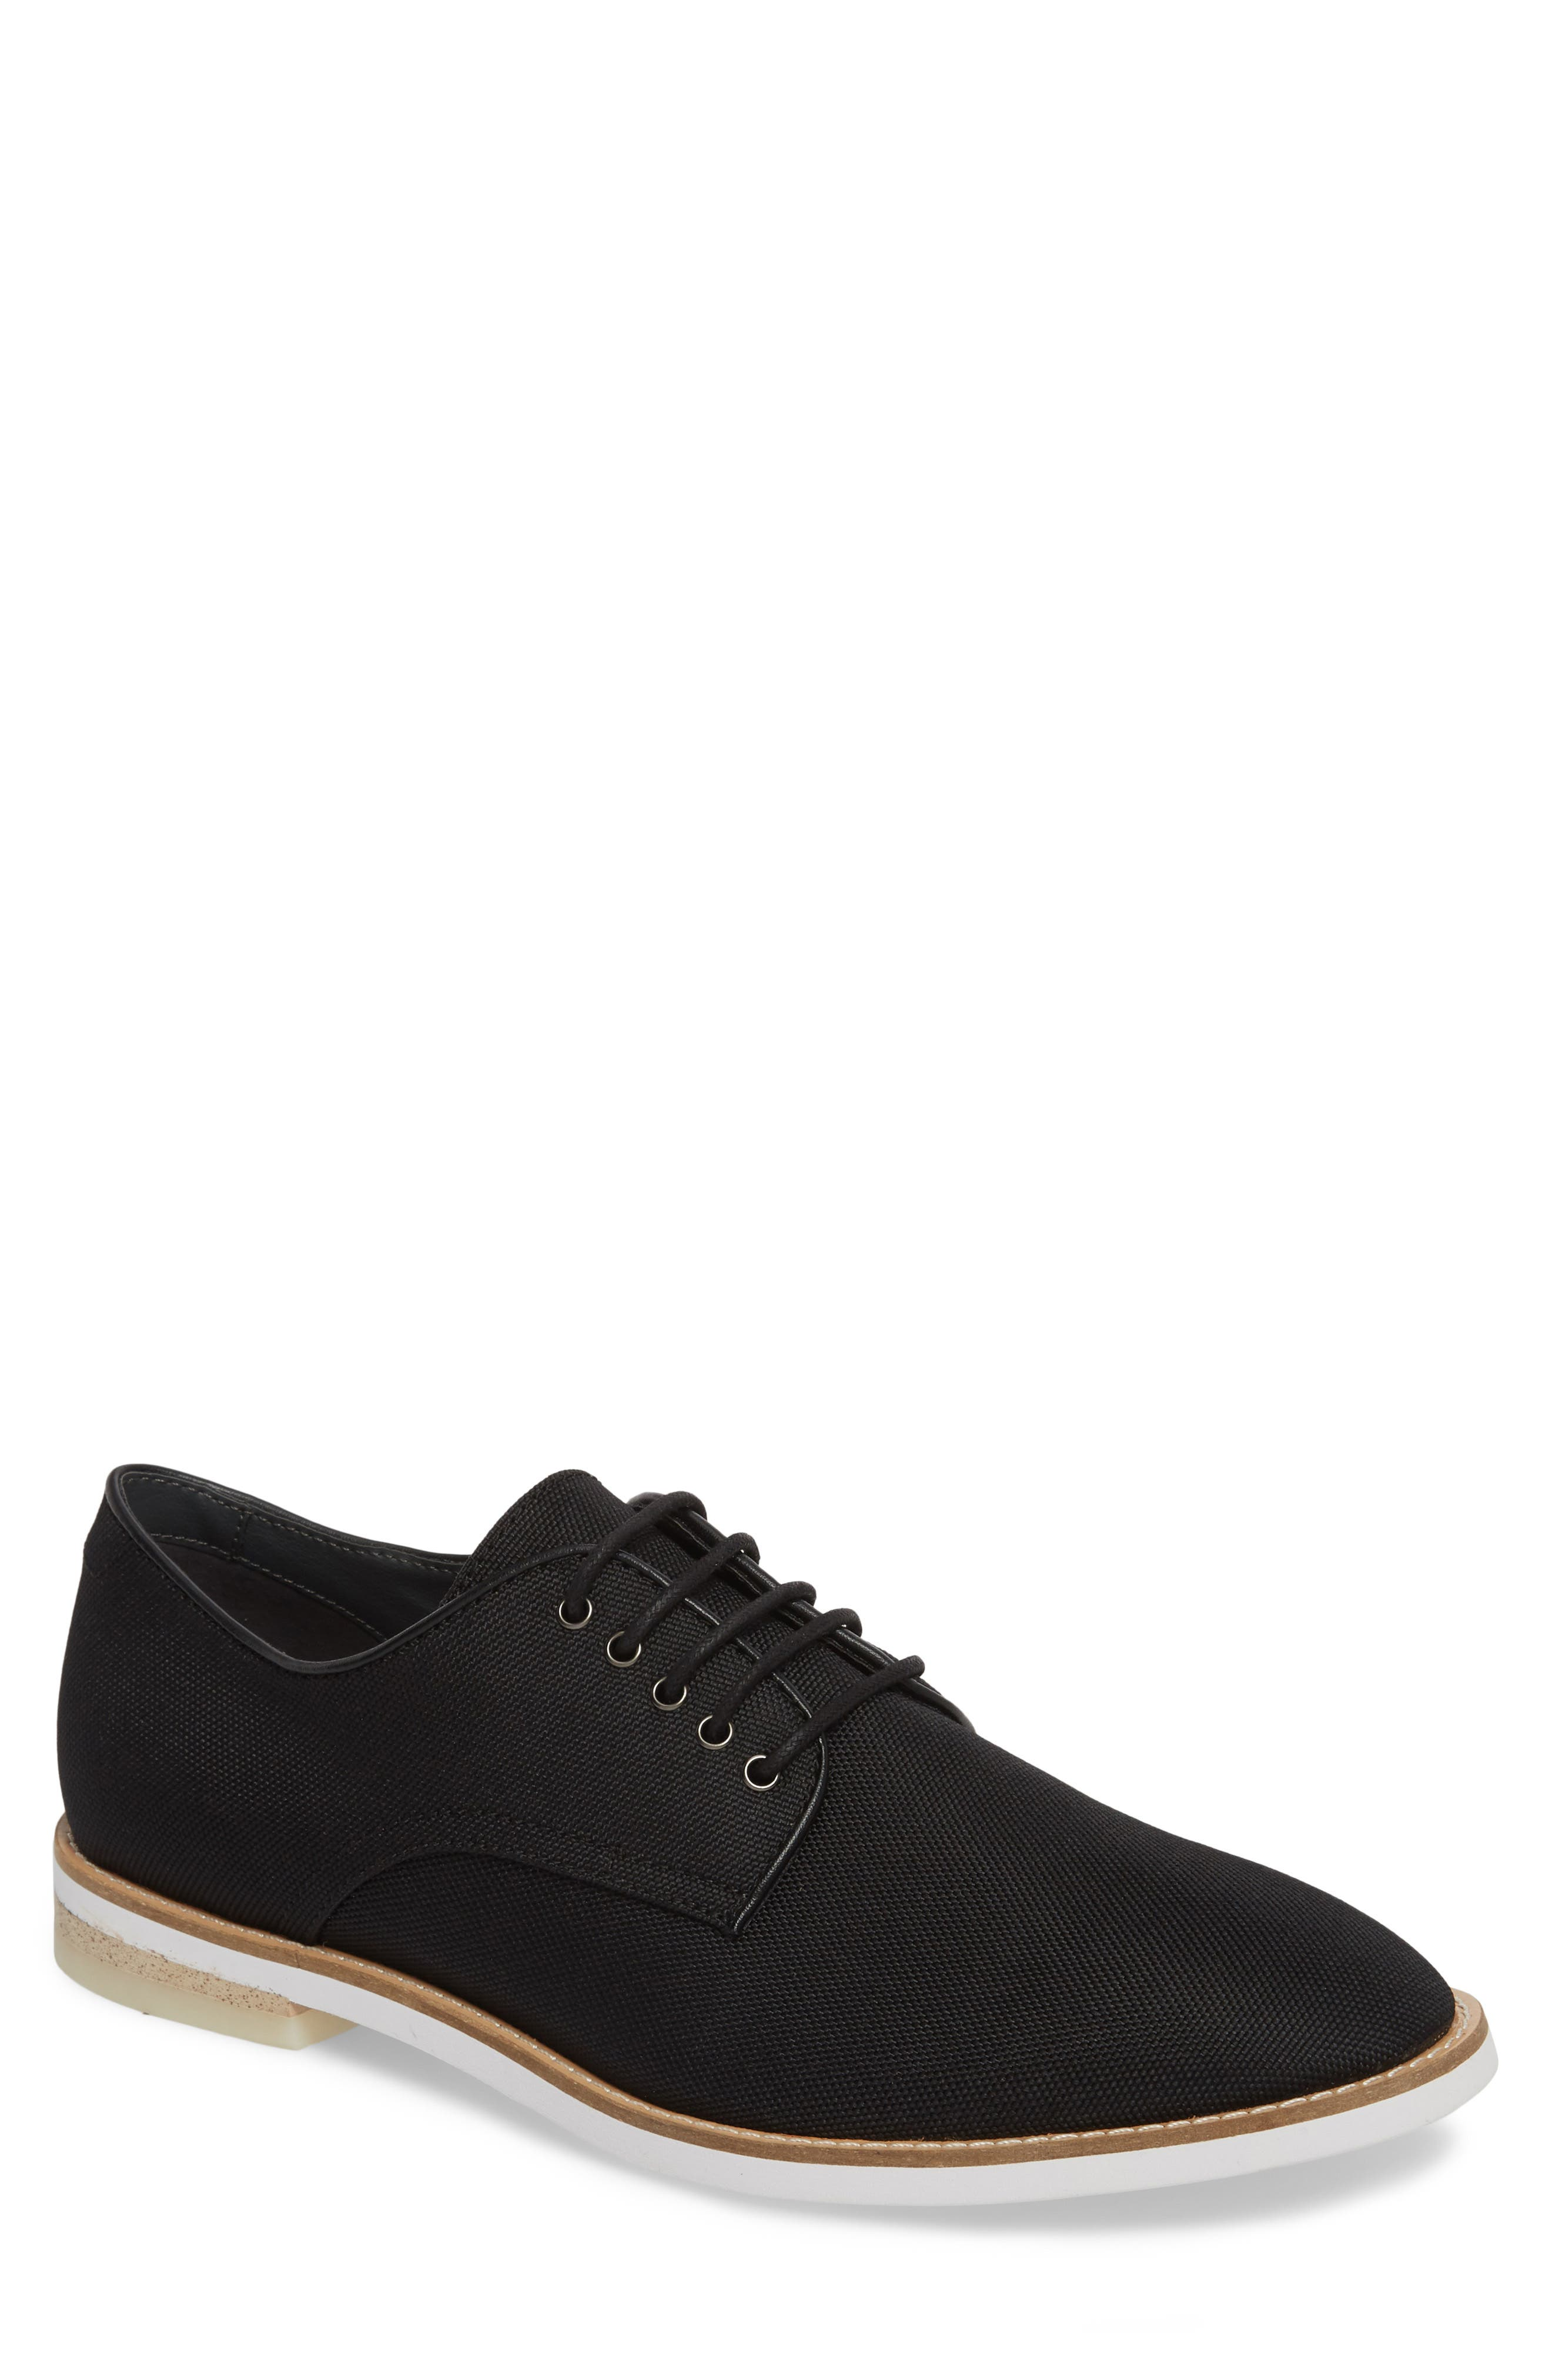 Atlee Plain Toe Derby,                         Main,                         color, BLACK SYNTHETIC